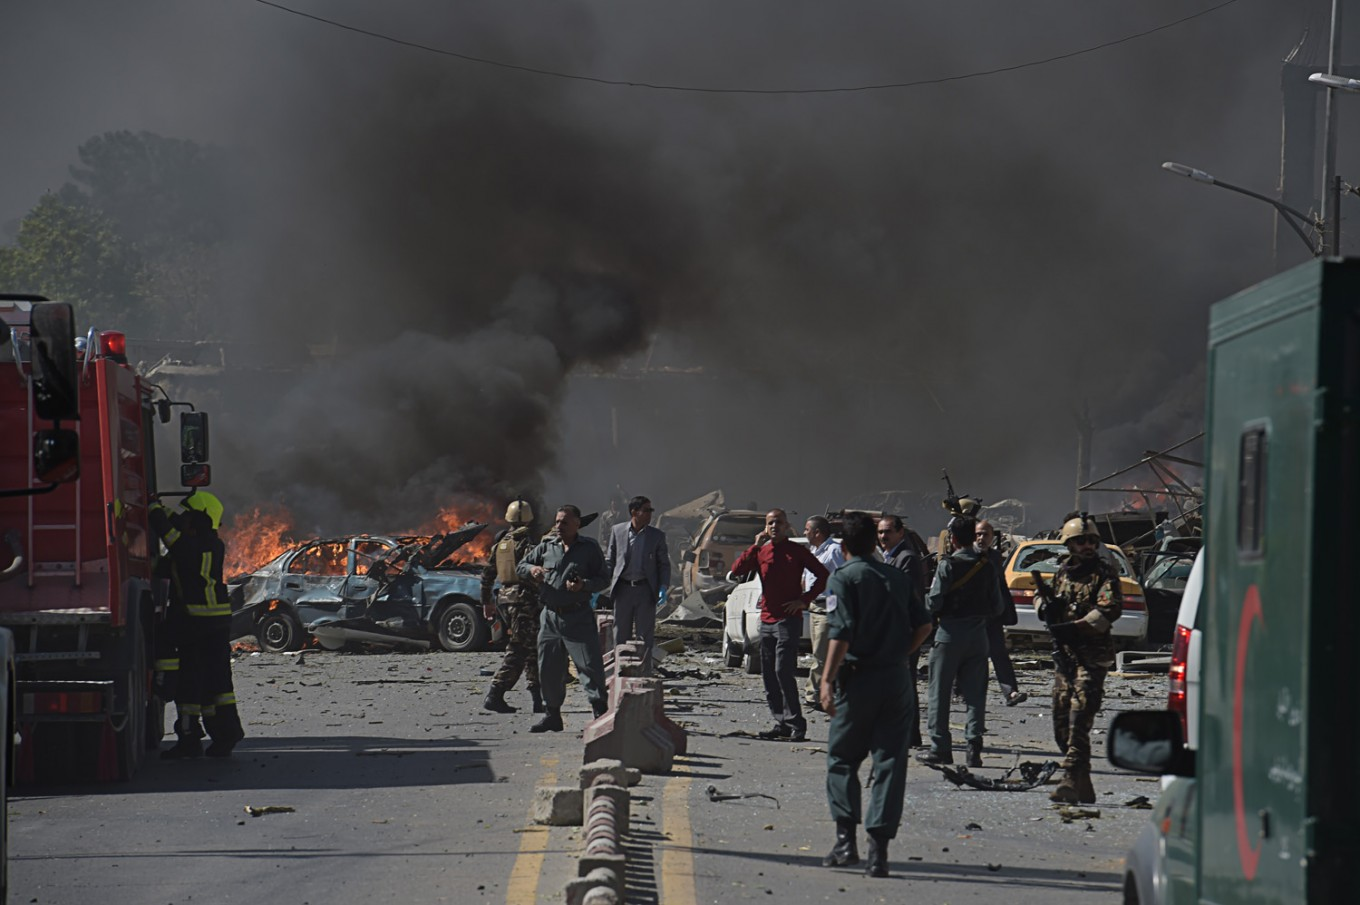 Taliban kill 30 soldiers in first major attack since ceasefire, governor says